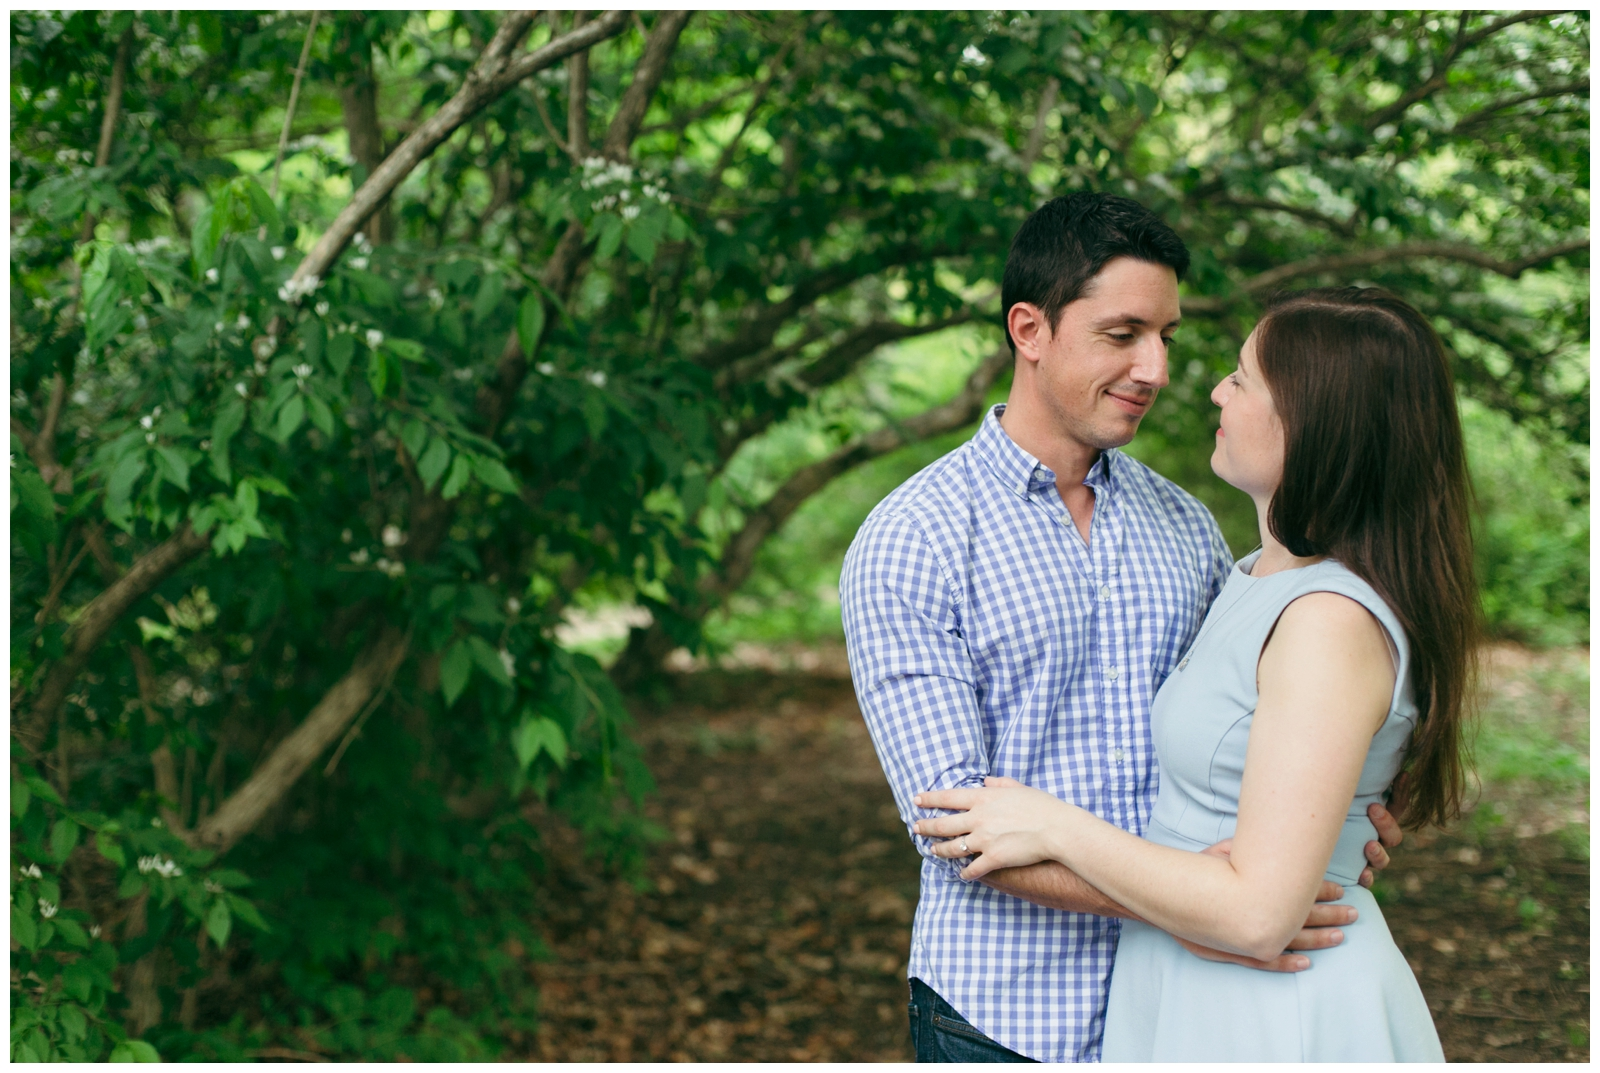 Arnold-Arboretum-Engagement-Boston-Wedding-Photographer-Bailey-Q-Photo-010.jpg